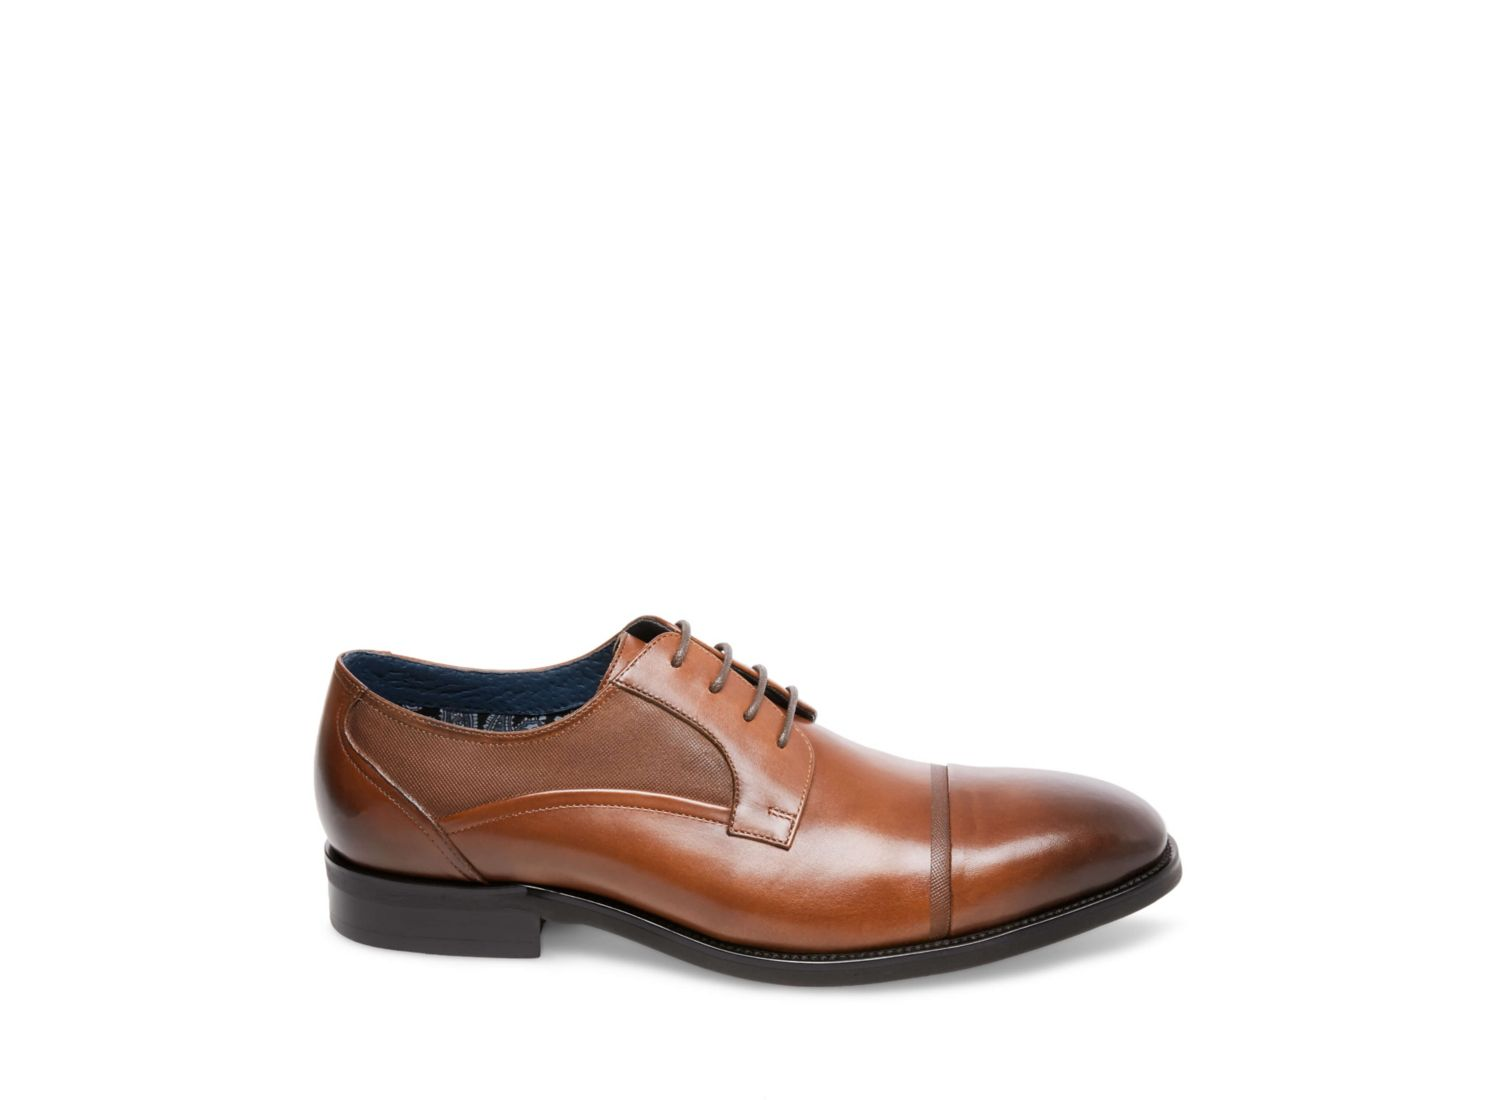 SPY COGNAC LEATHER - Steve Madden